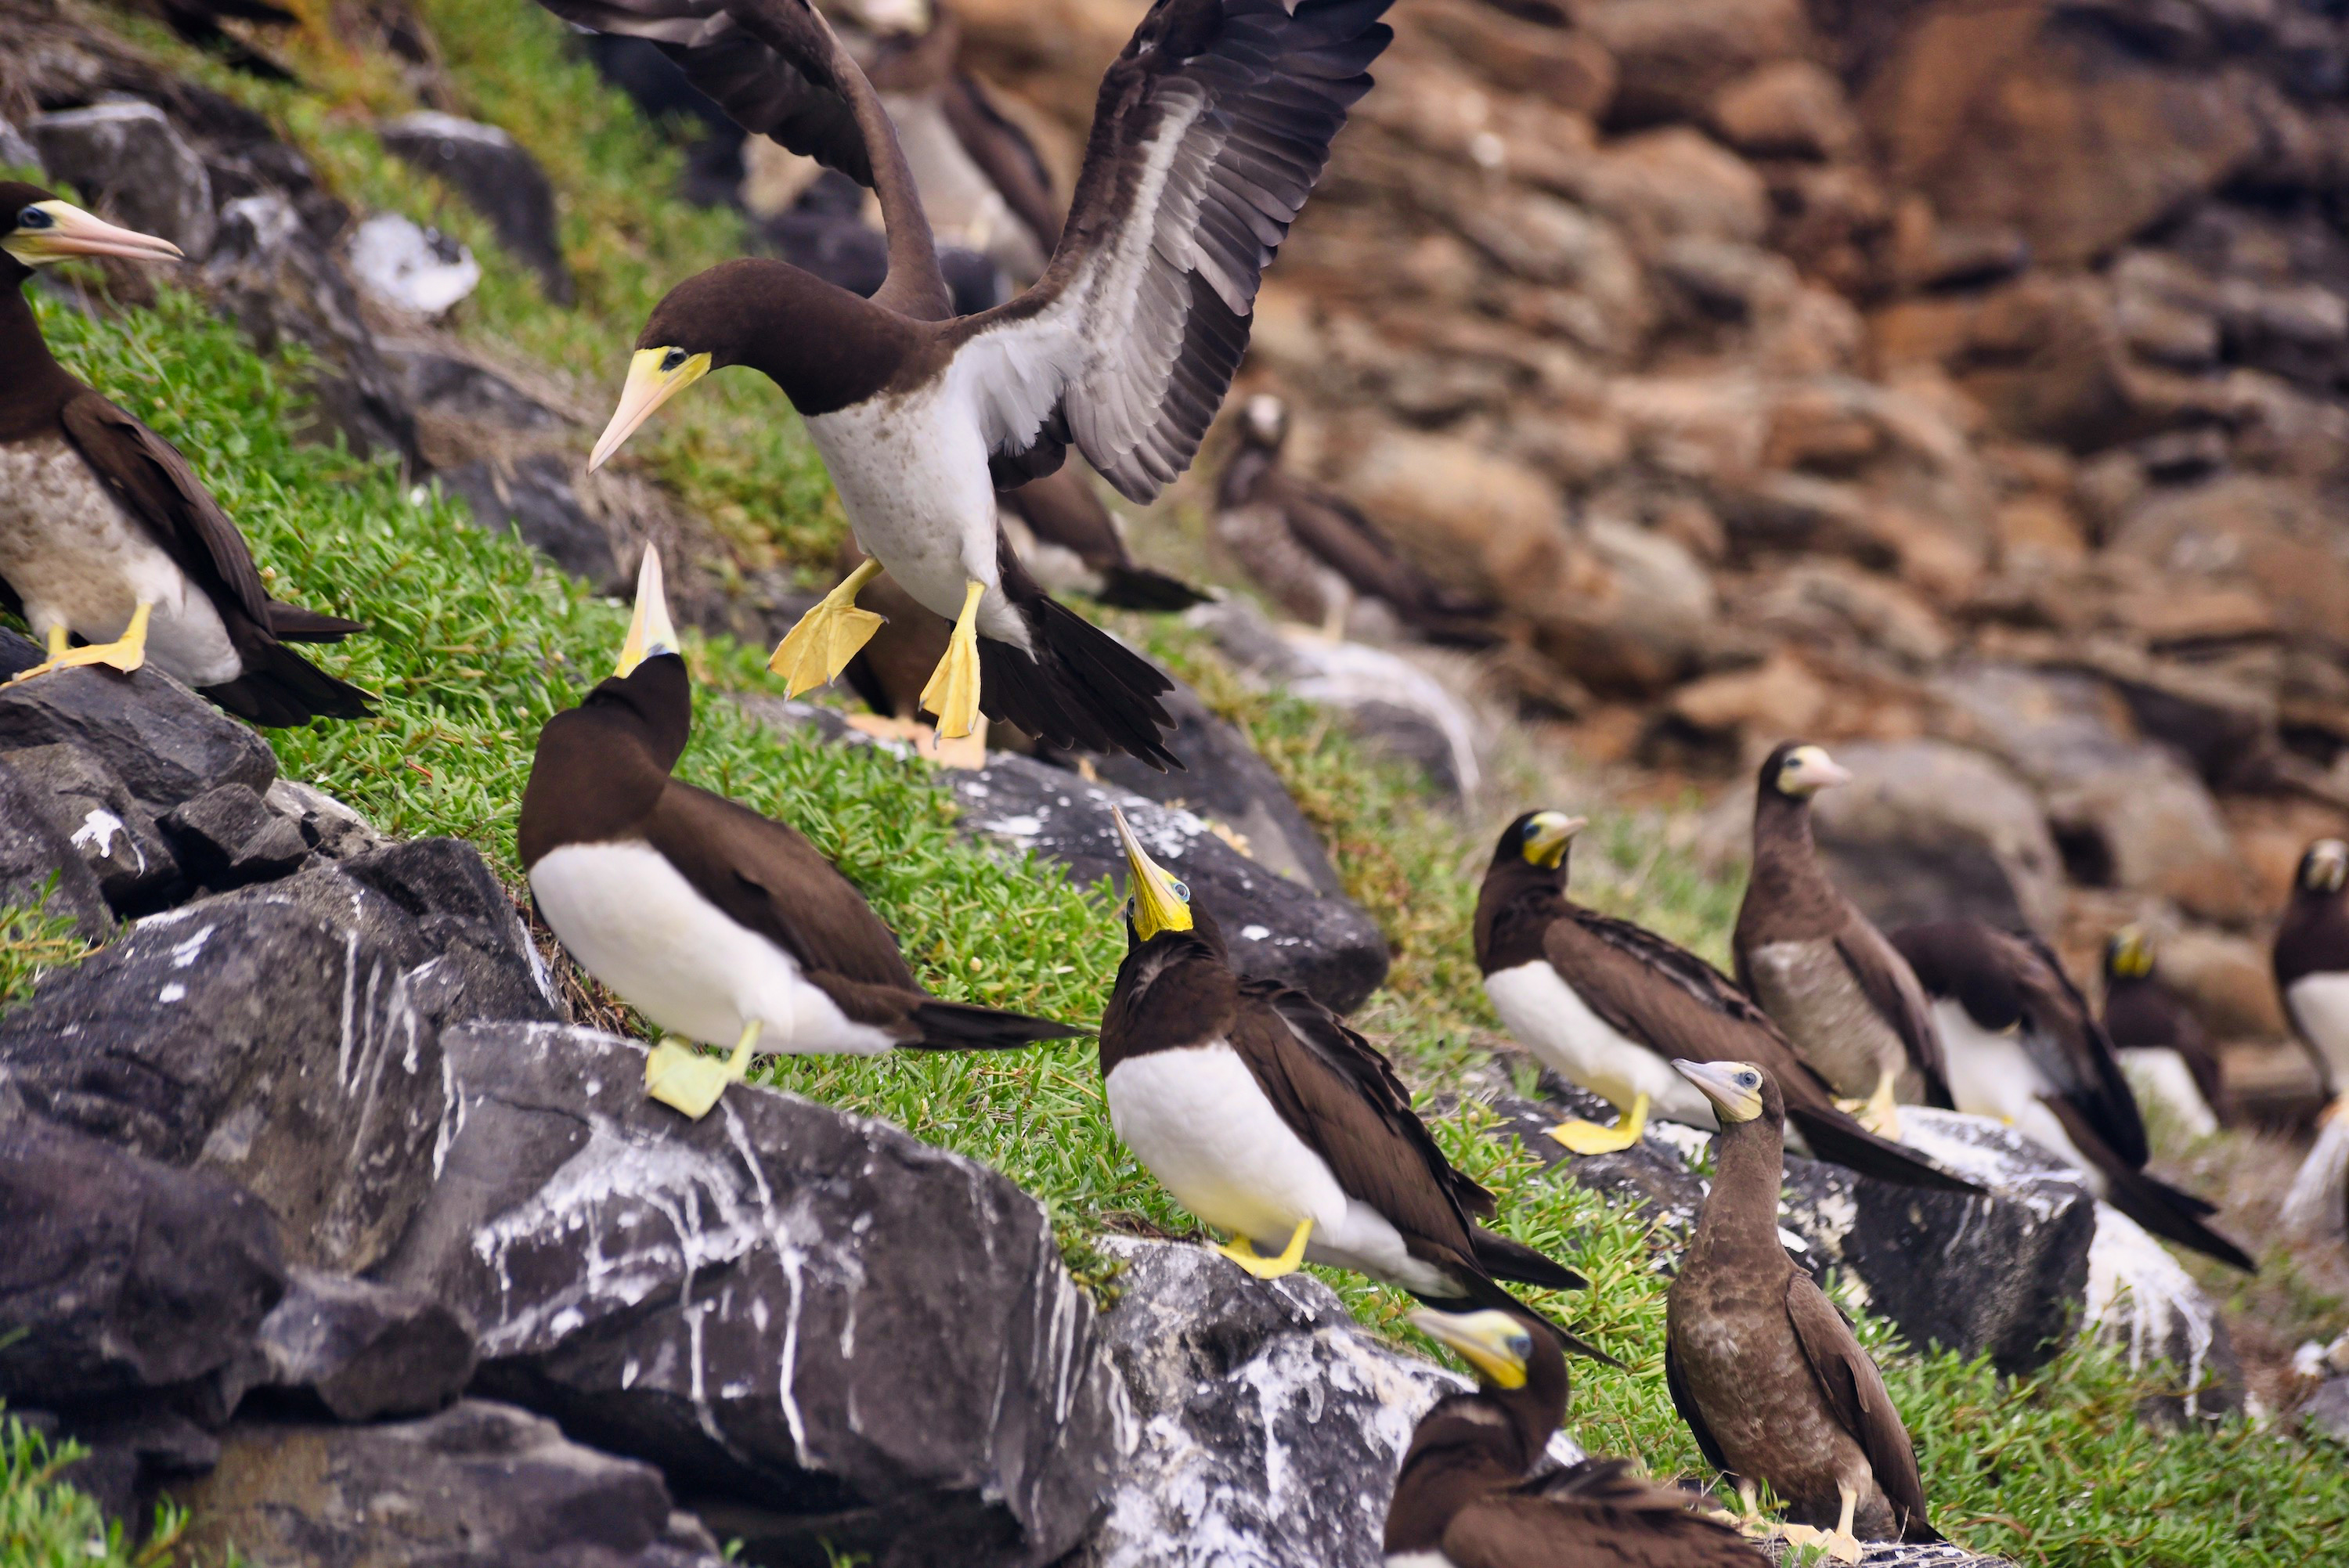 Brown booby colony at Caieiras Beach. Photo by Pierre Constant